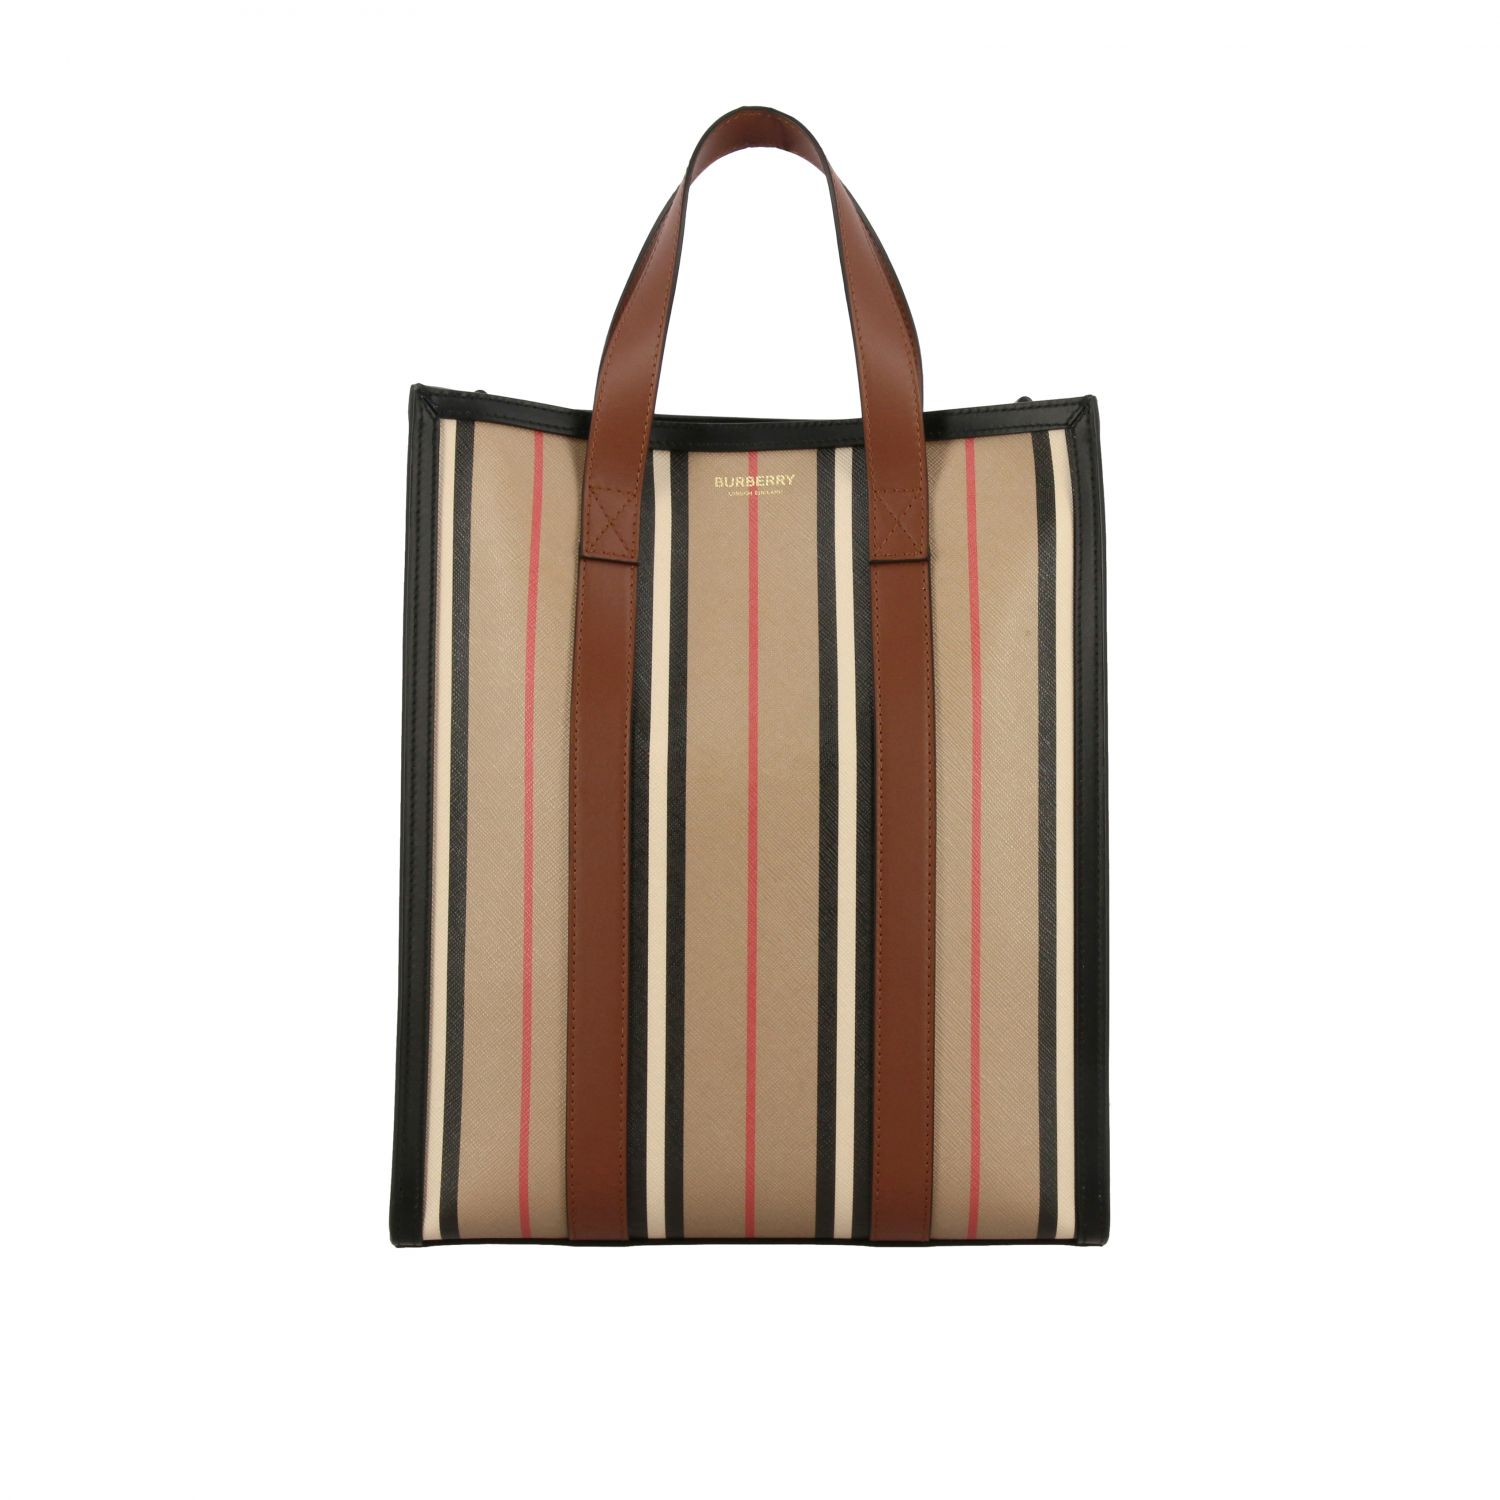 Borsa Book tote shopping Burberry in pelle a righe vintage beige 1